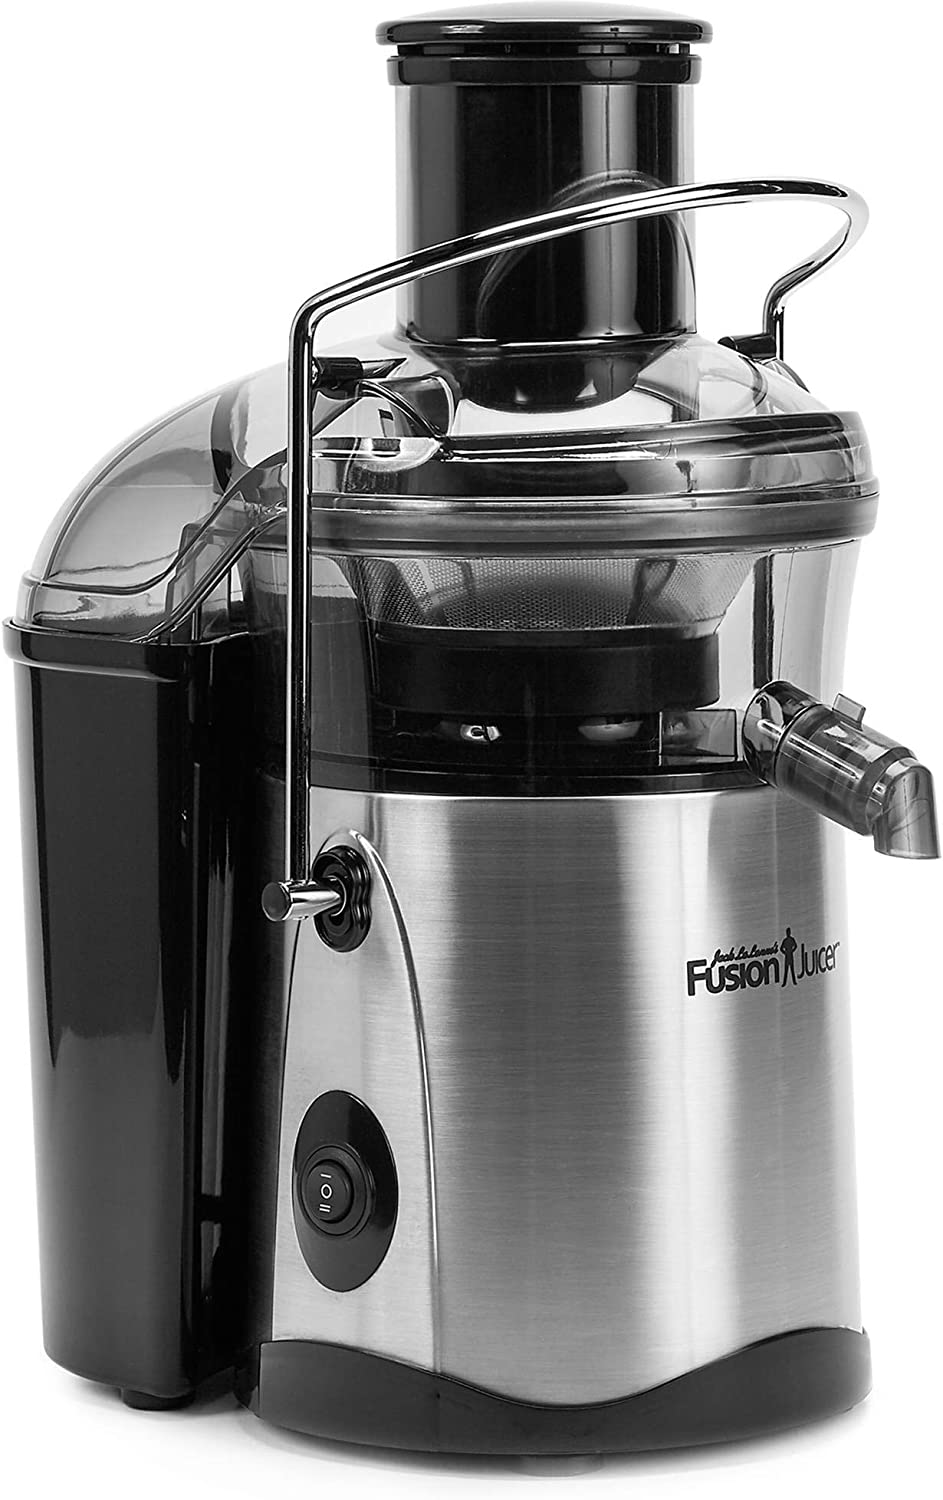 NEW Jack Lalannes JLSS Power Juicer Deluxe Stainless-Steel Electric Juicer